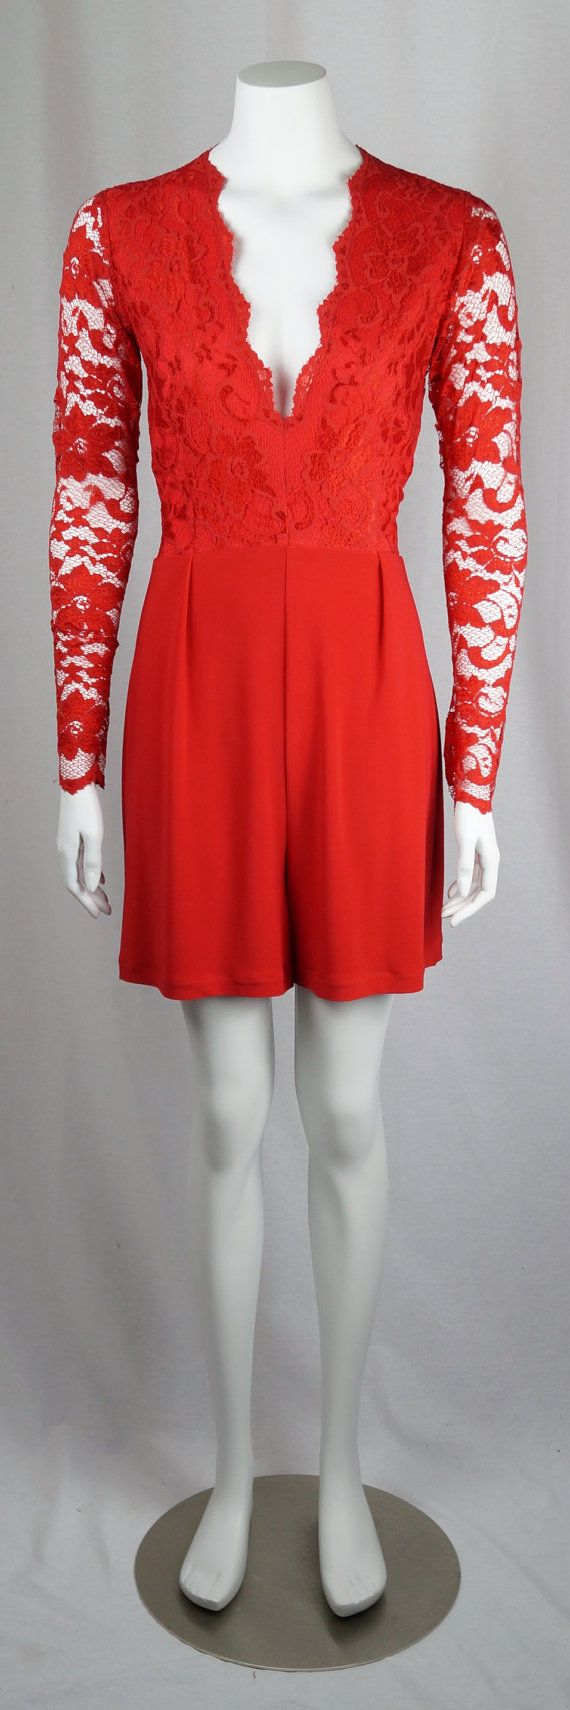 Baylis & Knight Red LACE Long Sleeve Low Cut Plunge MINI Short